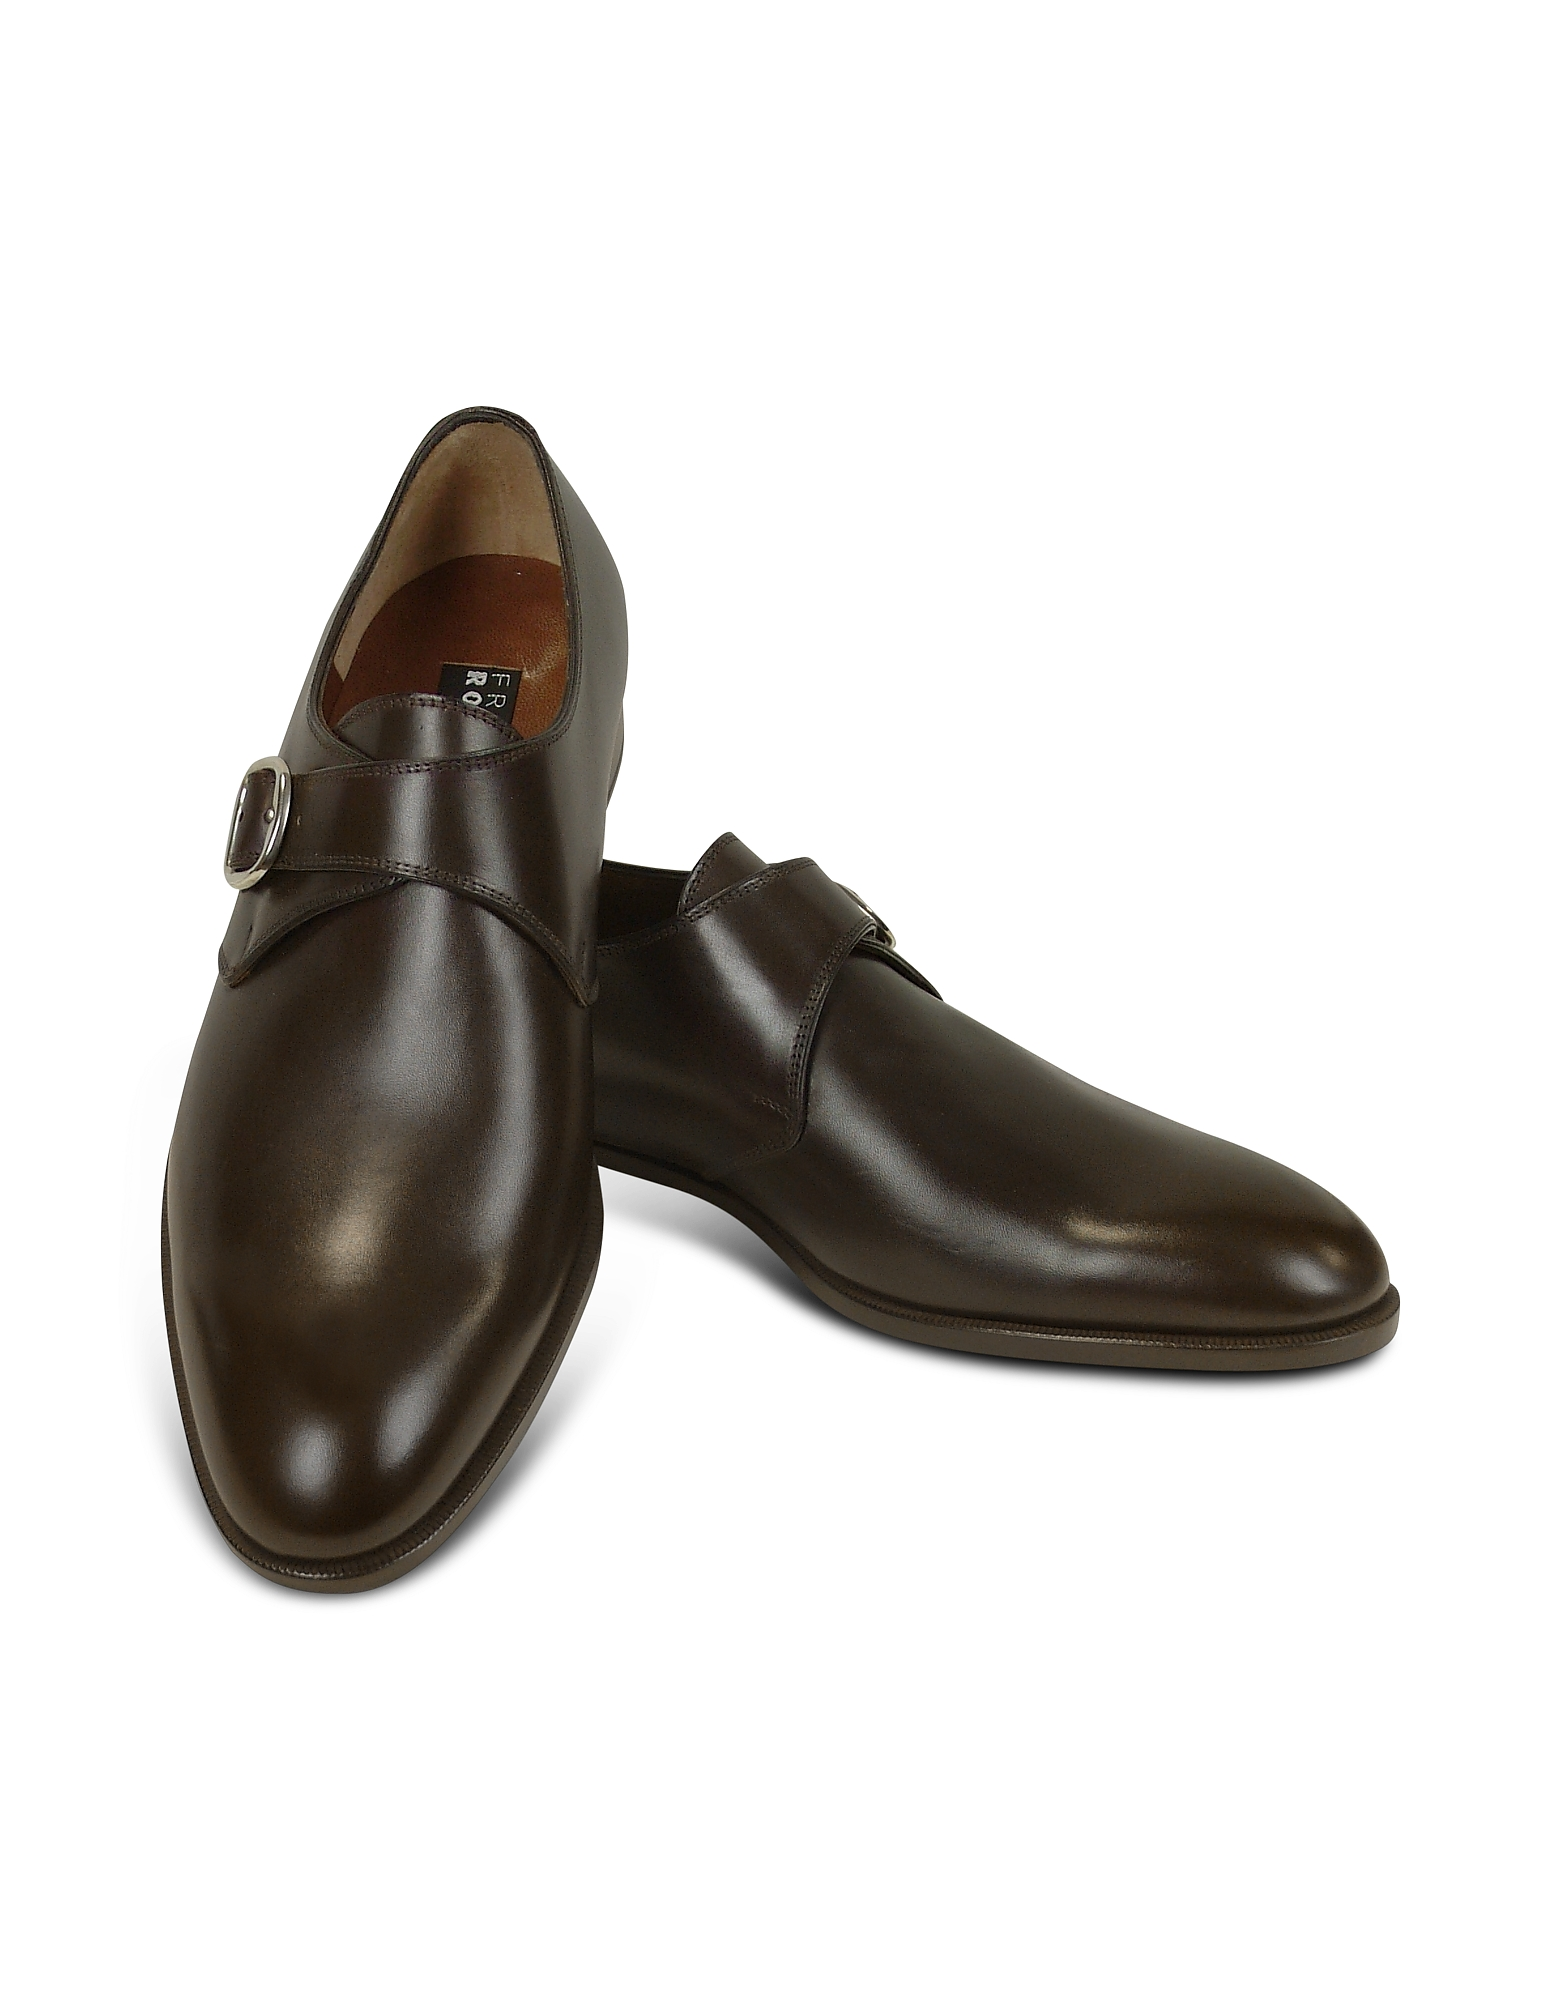 Image of Fratelli Rossetti Designer Shoes, Dark Brown Calf Leather Monk Strap Shoes